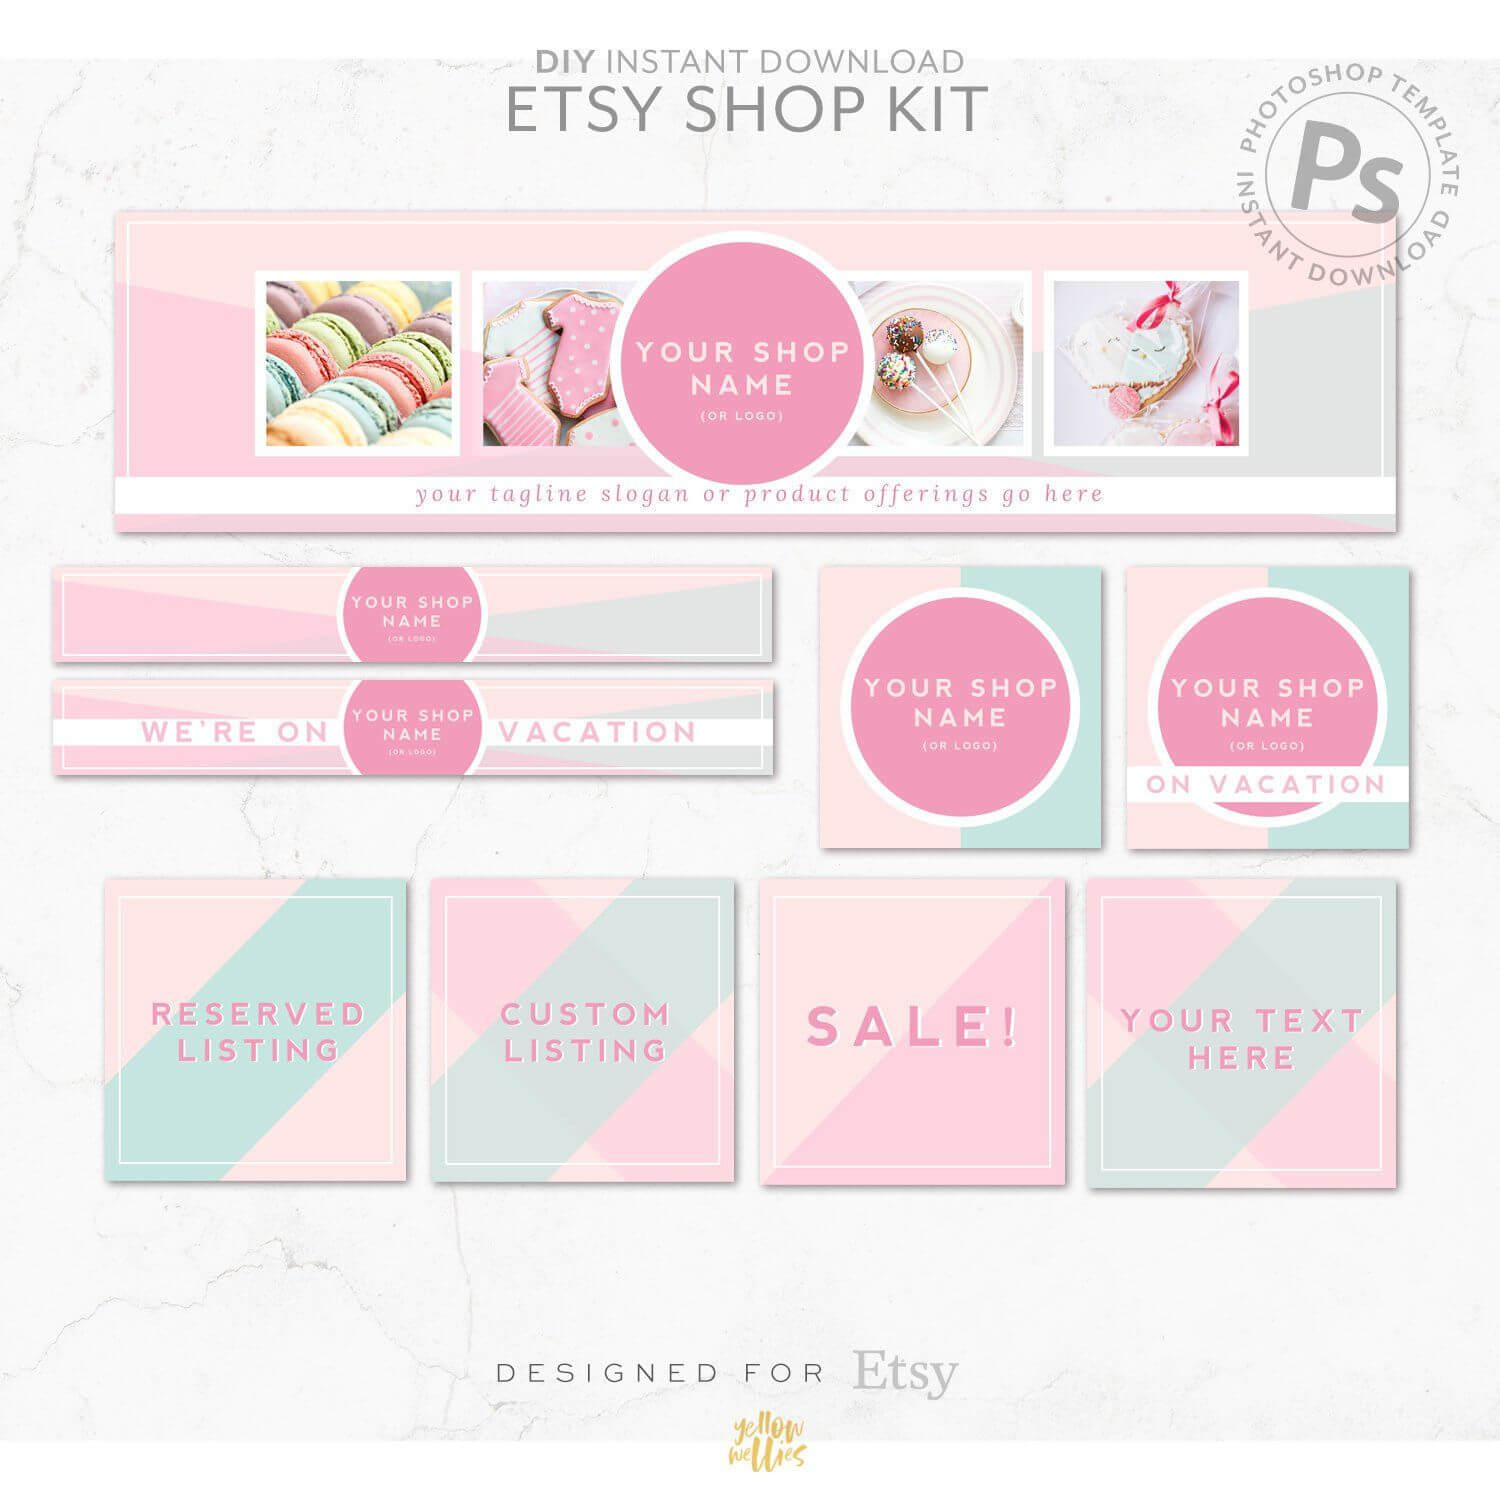 Diy Editable Etsy Shop Graphic Bundle Kit | Etsy Banner with Free Etsy Banner Template